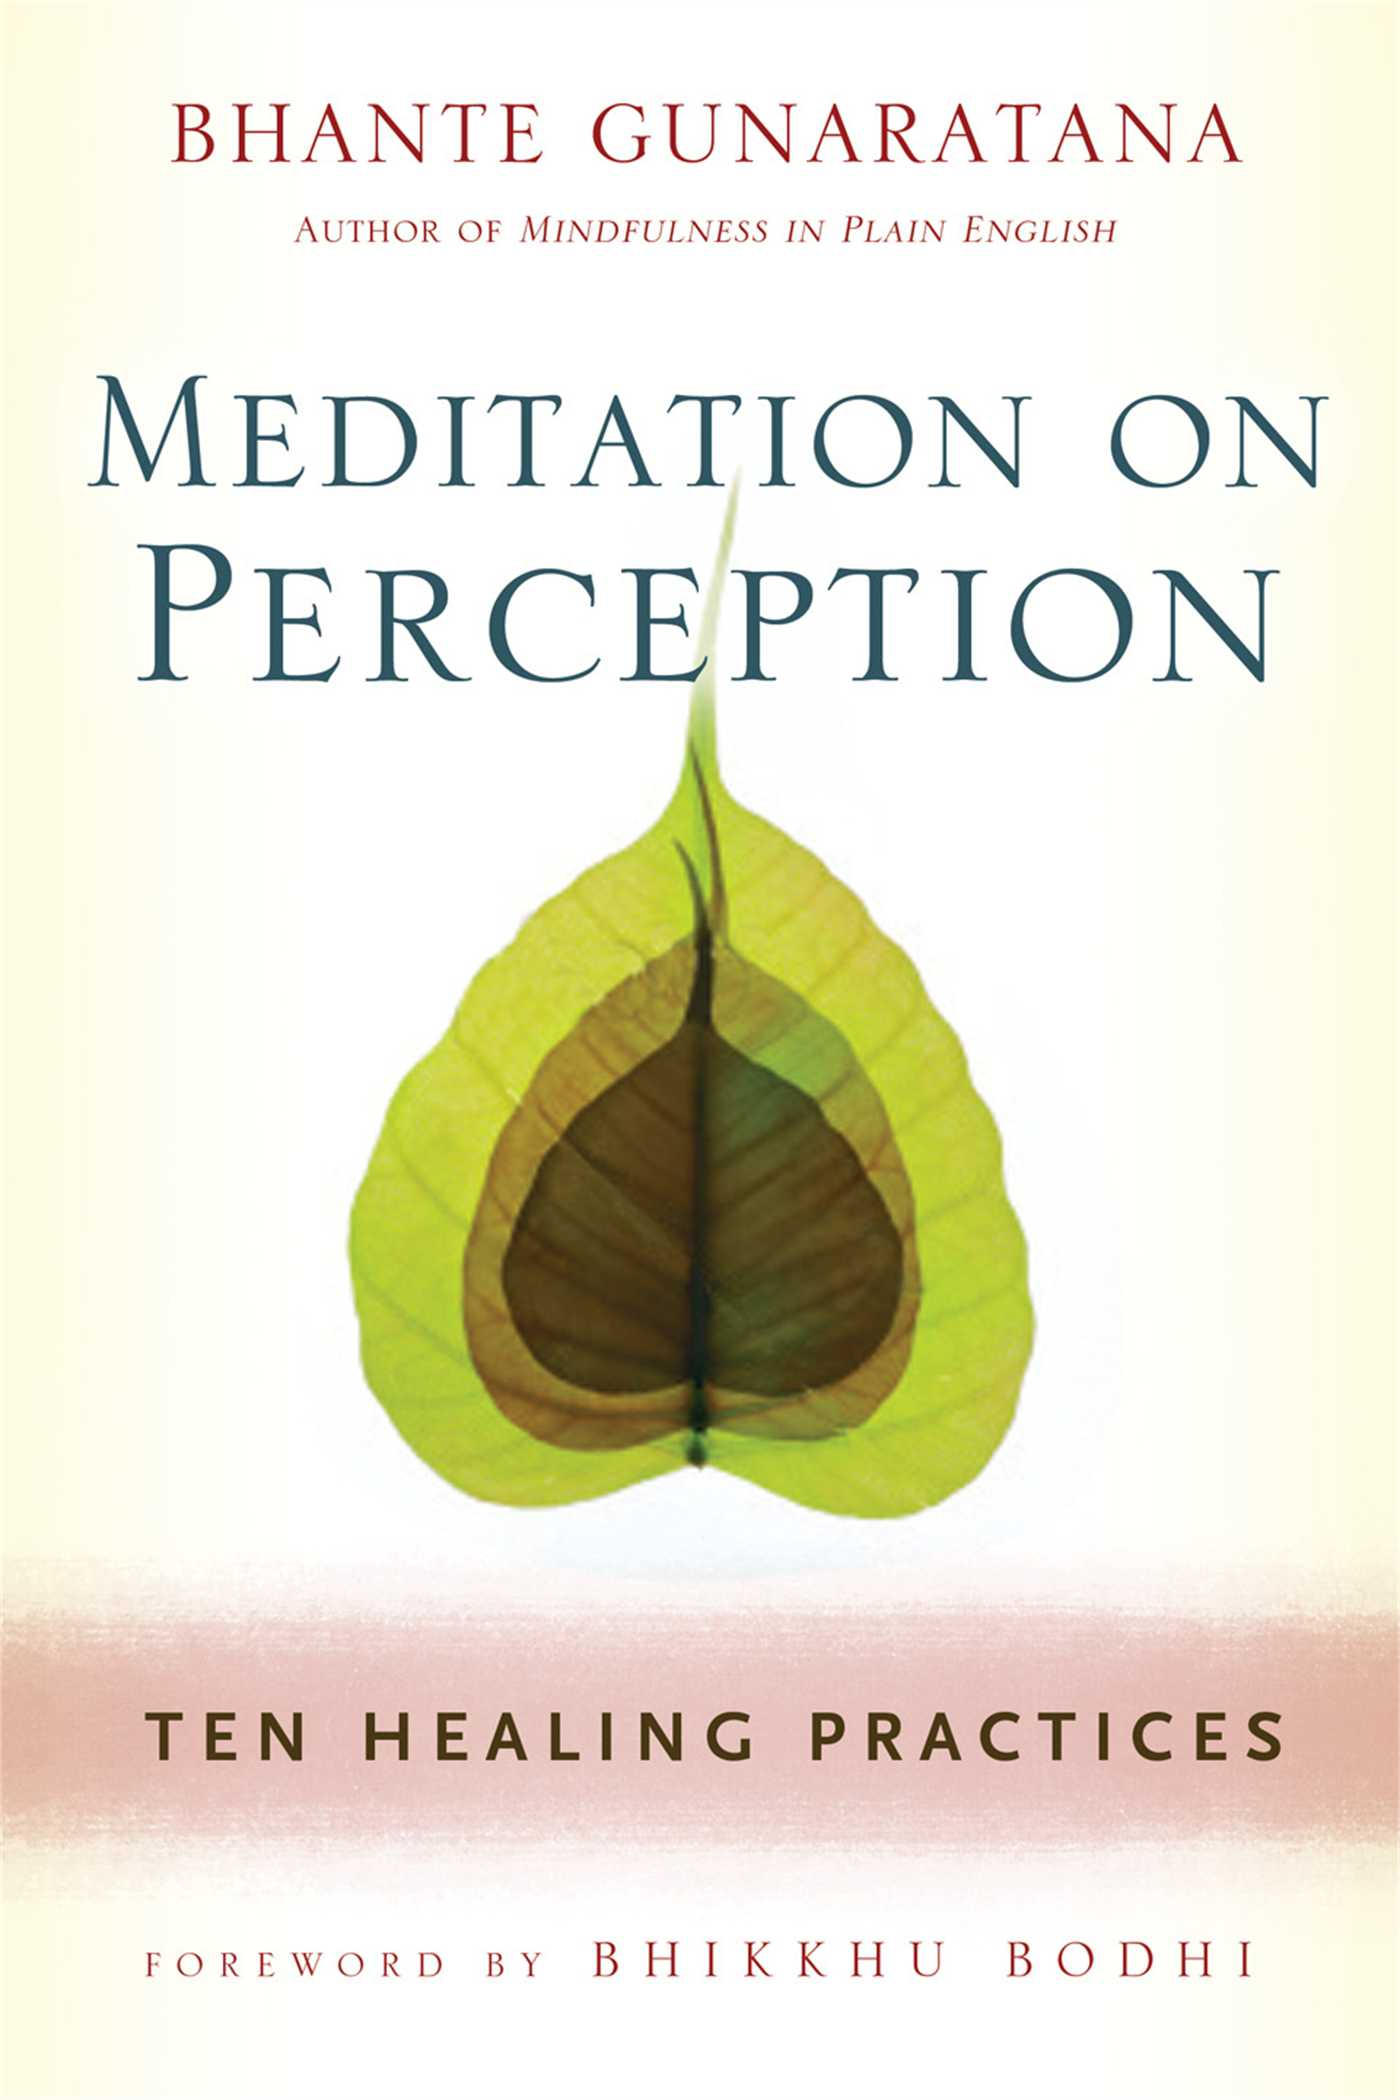 Meditation-on-perception-9781614290858_hr